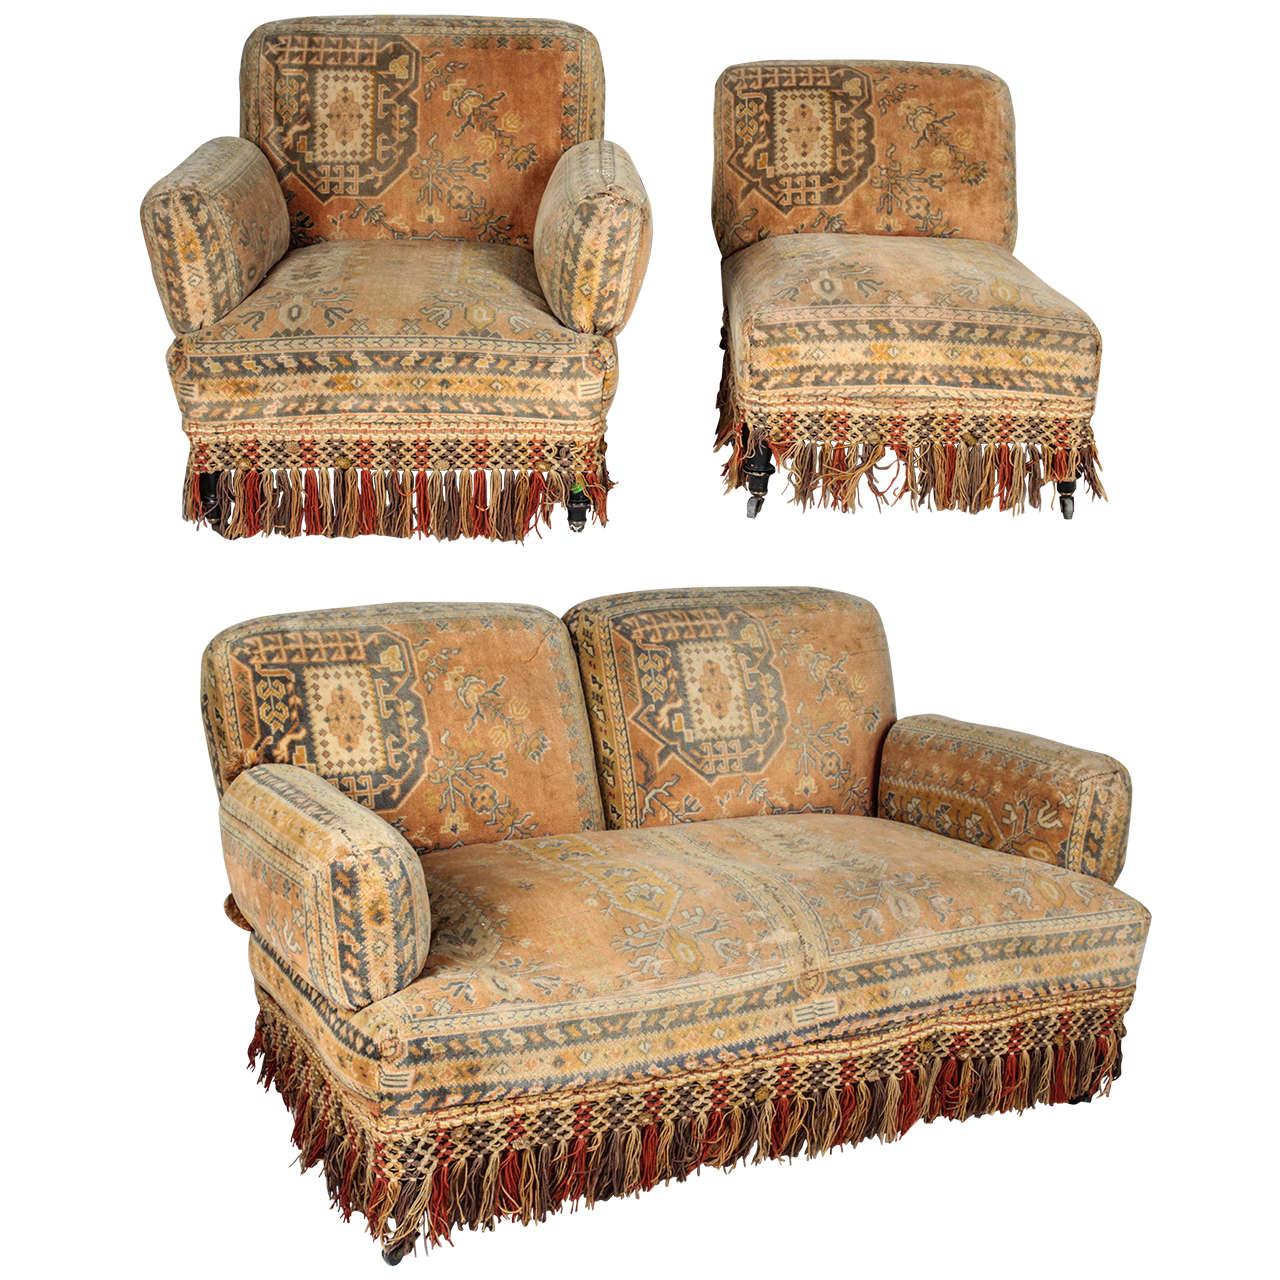 bernhard chair review antique leather seats sofa tapestry wayfair thesofa